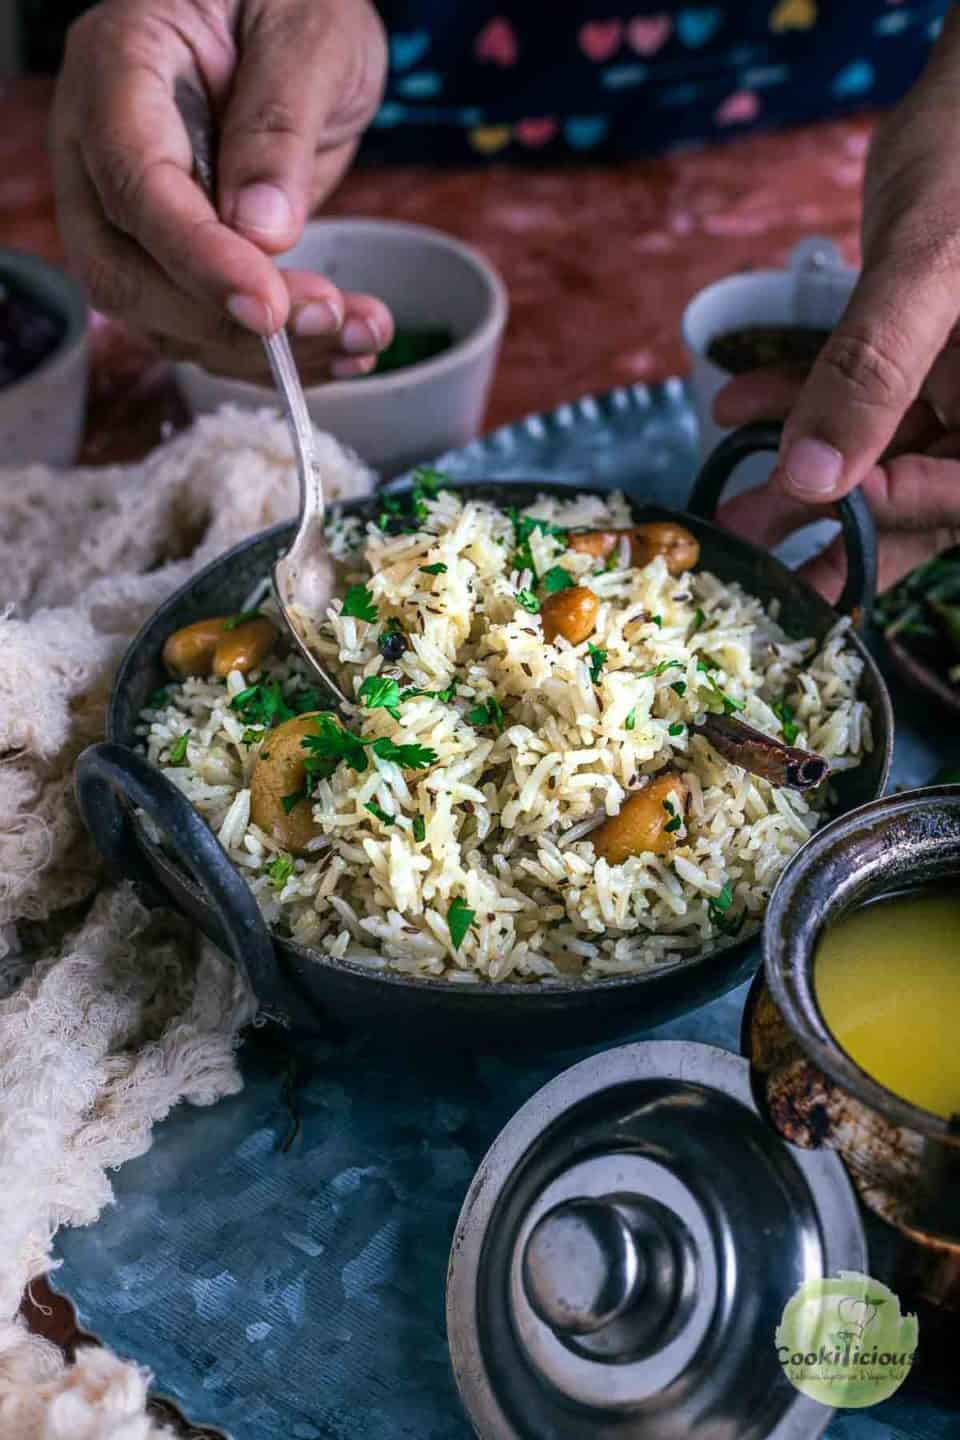 one hand holding a small kadai filled with jeera rice while the other hand is digging in with a spoon